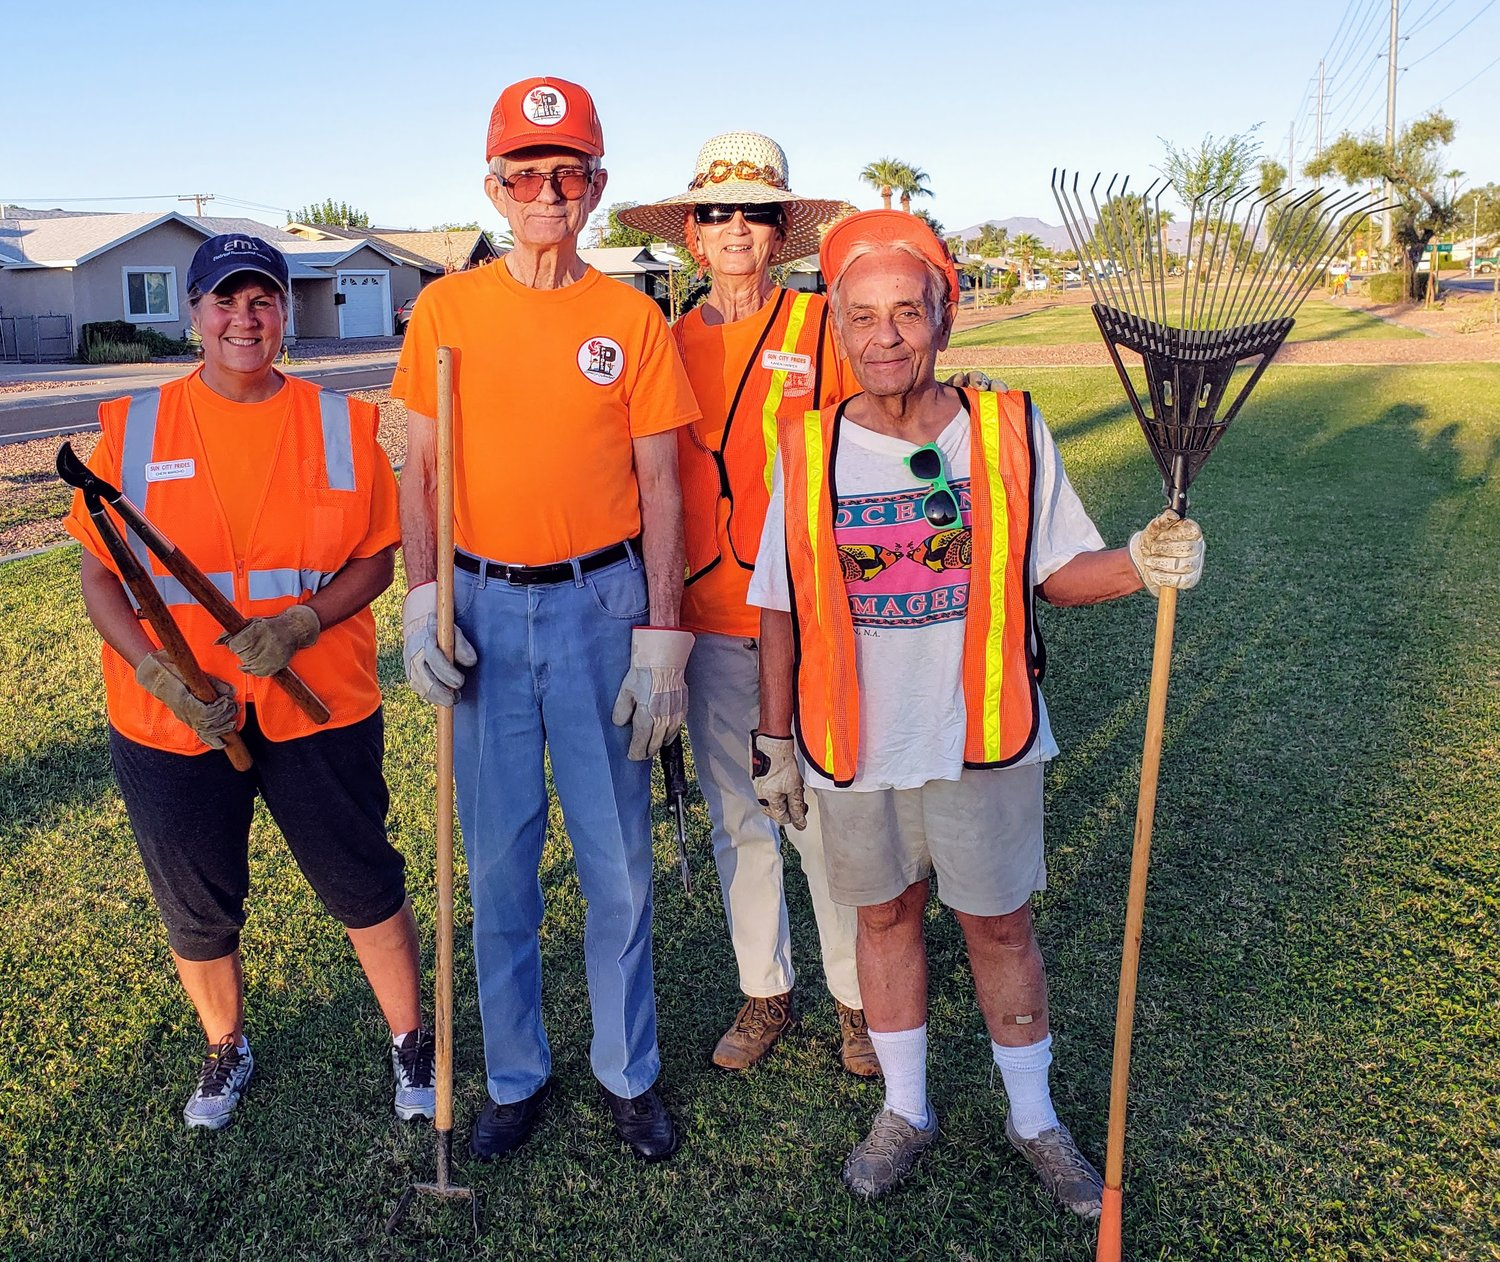 Sun City PRIDES volunteers working on Alabama Avenue, from left, Cheri Marchio, Bruce Calhoun, Karen Harper and Alan Rockman.